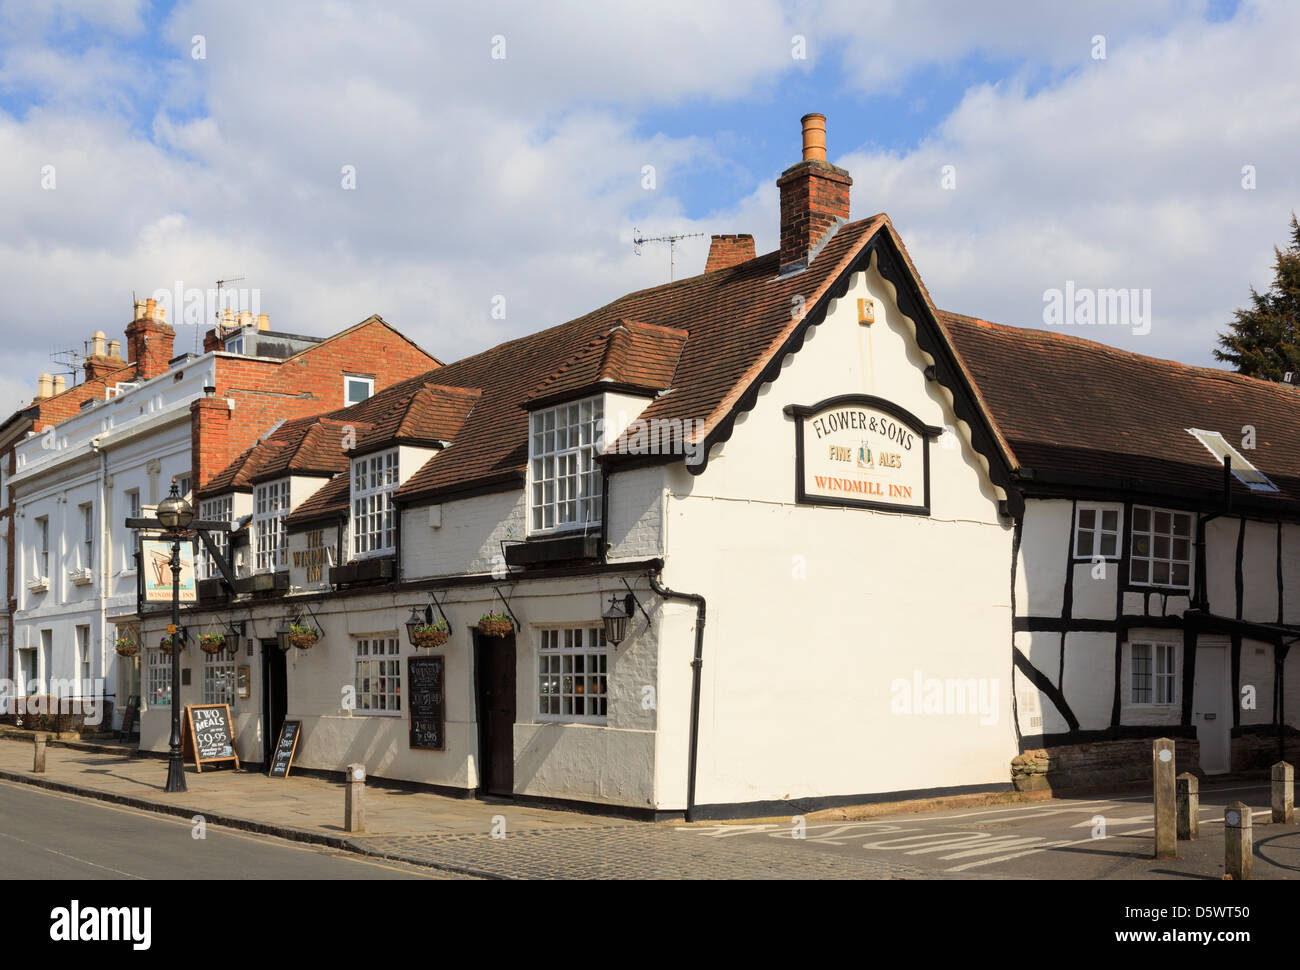 The Windmill Inn is a traditional 16th century black and white timbered building in Stratford-upon-Avon Warwickshire - Stock Image